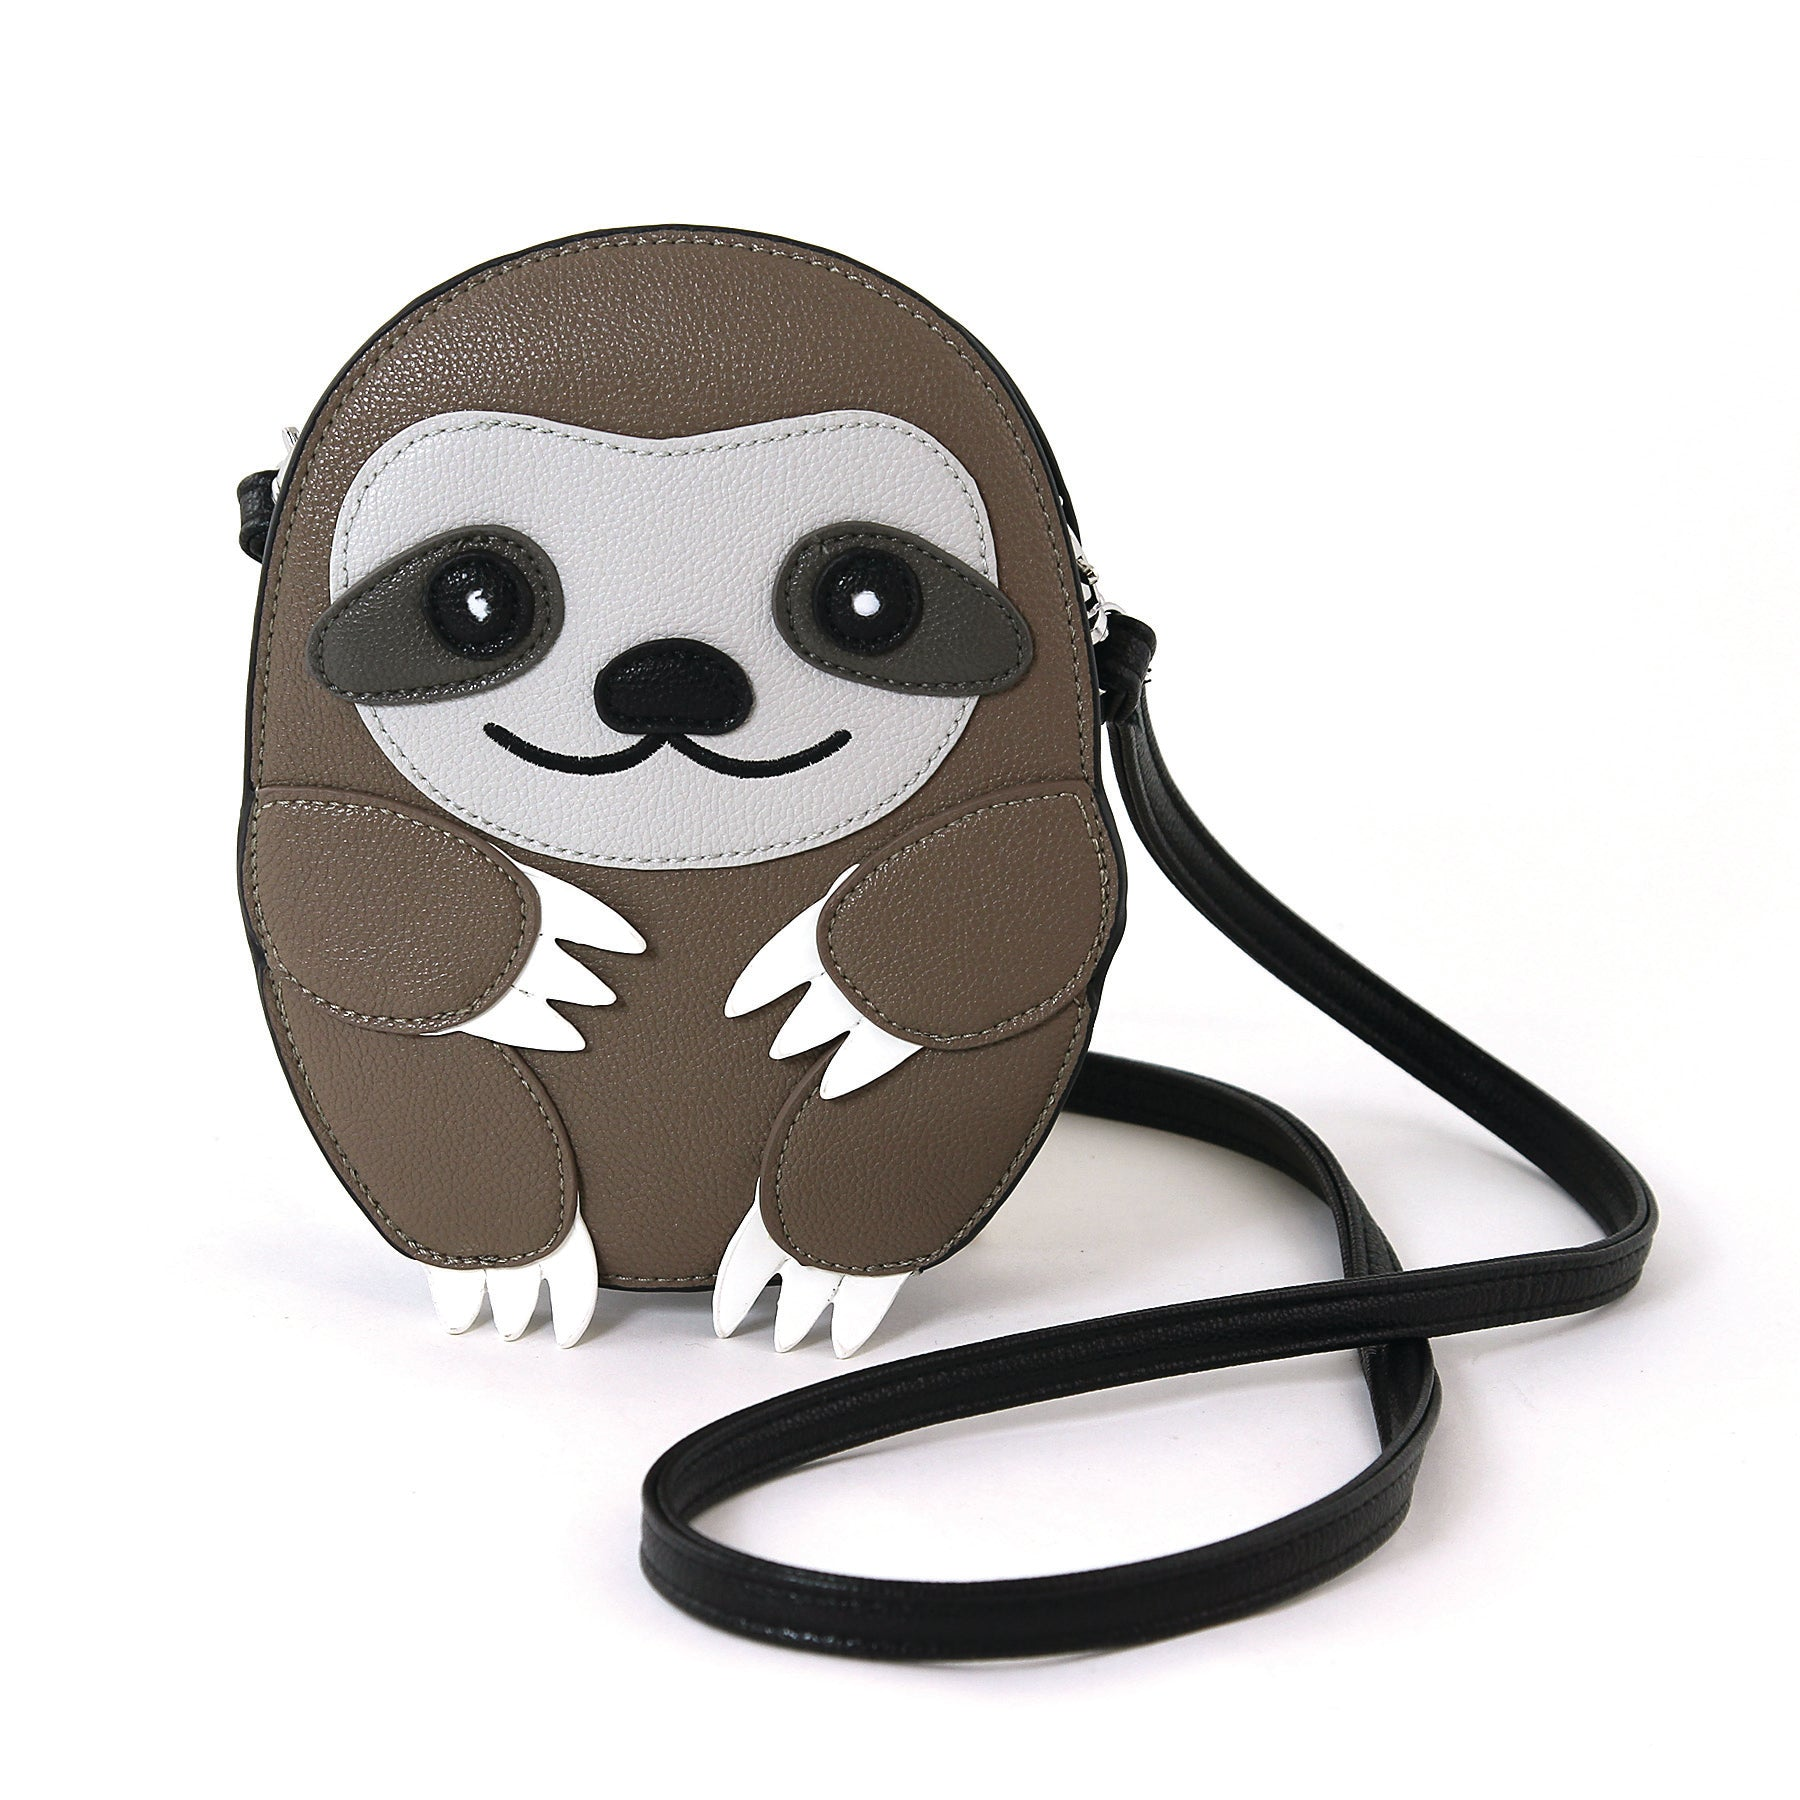 Sleepyville Critters Baby Sloth Shoulder Crossbody Bag in Vinyl Material front view